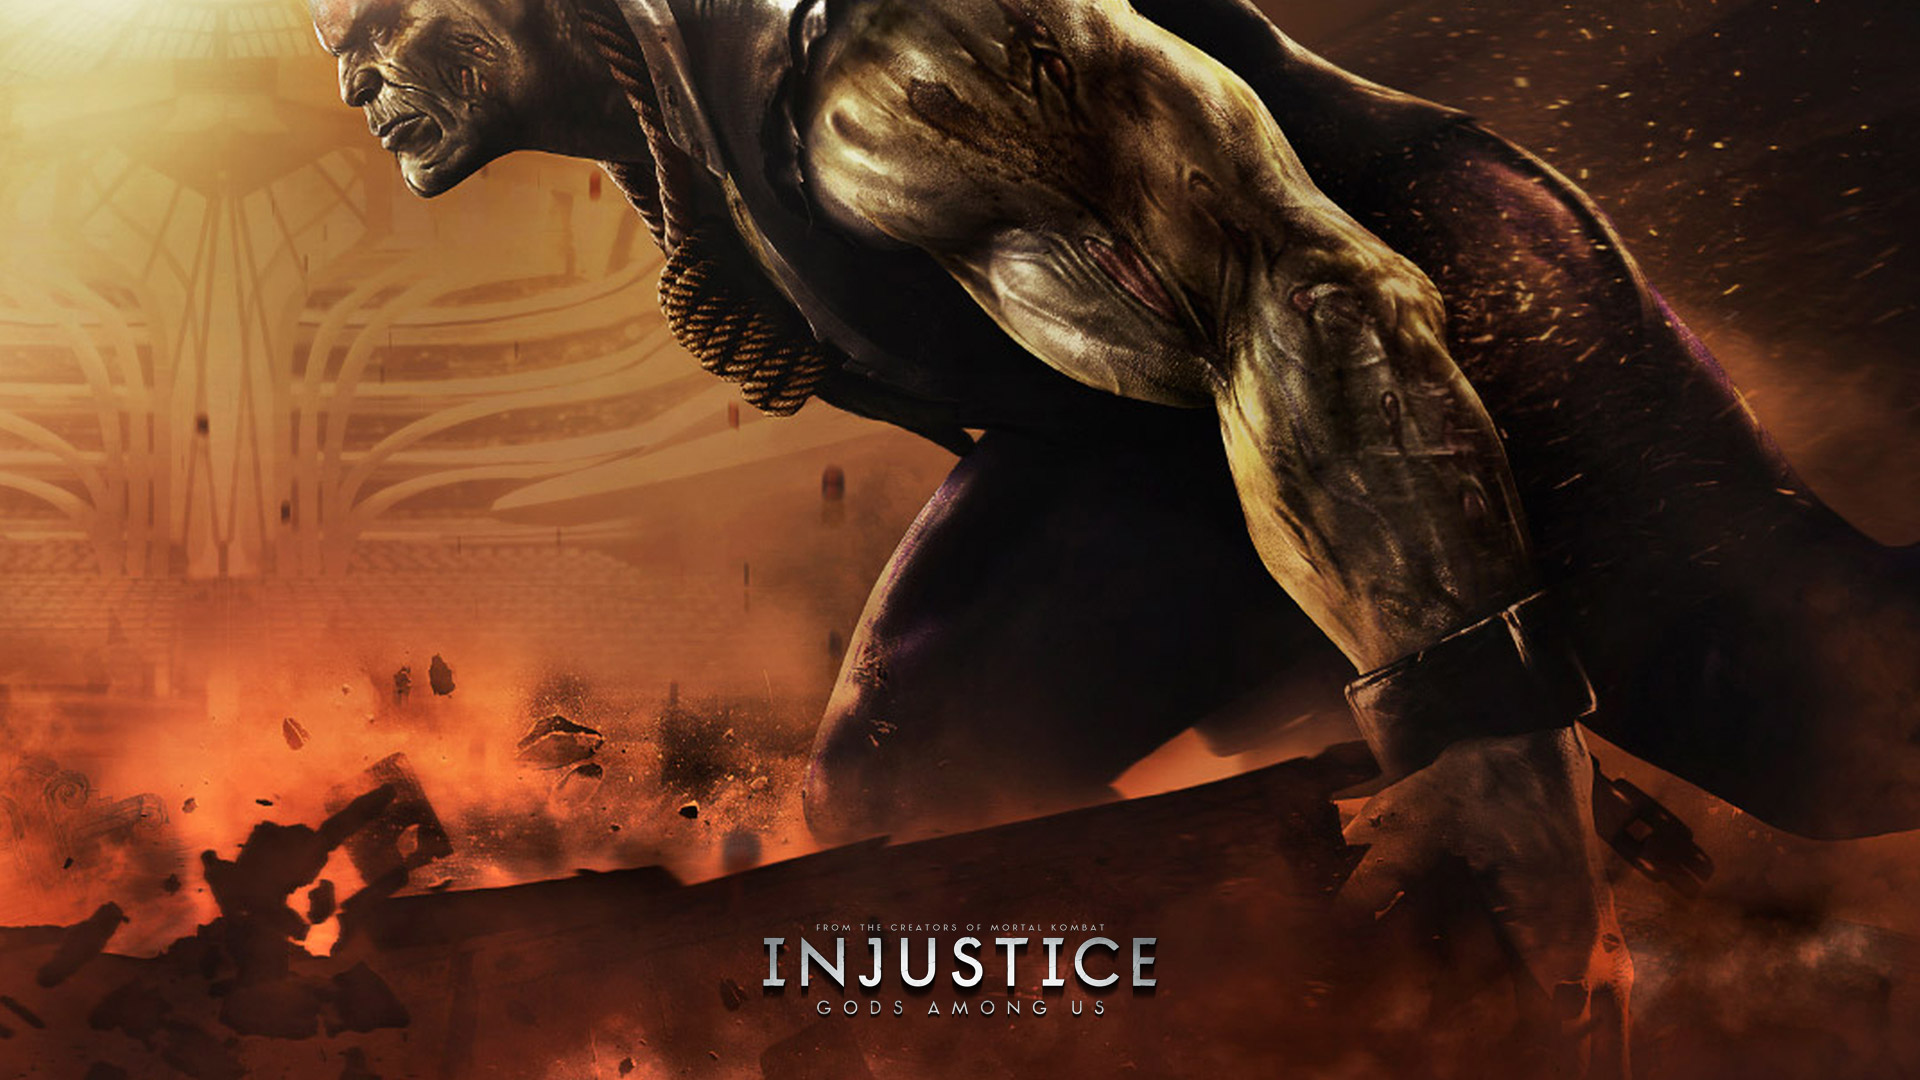 Injustice gods among us wallpaper 9 voltagebd Image collections